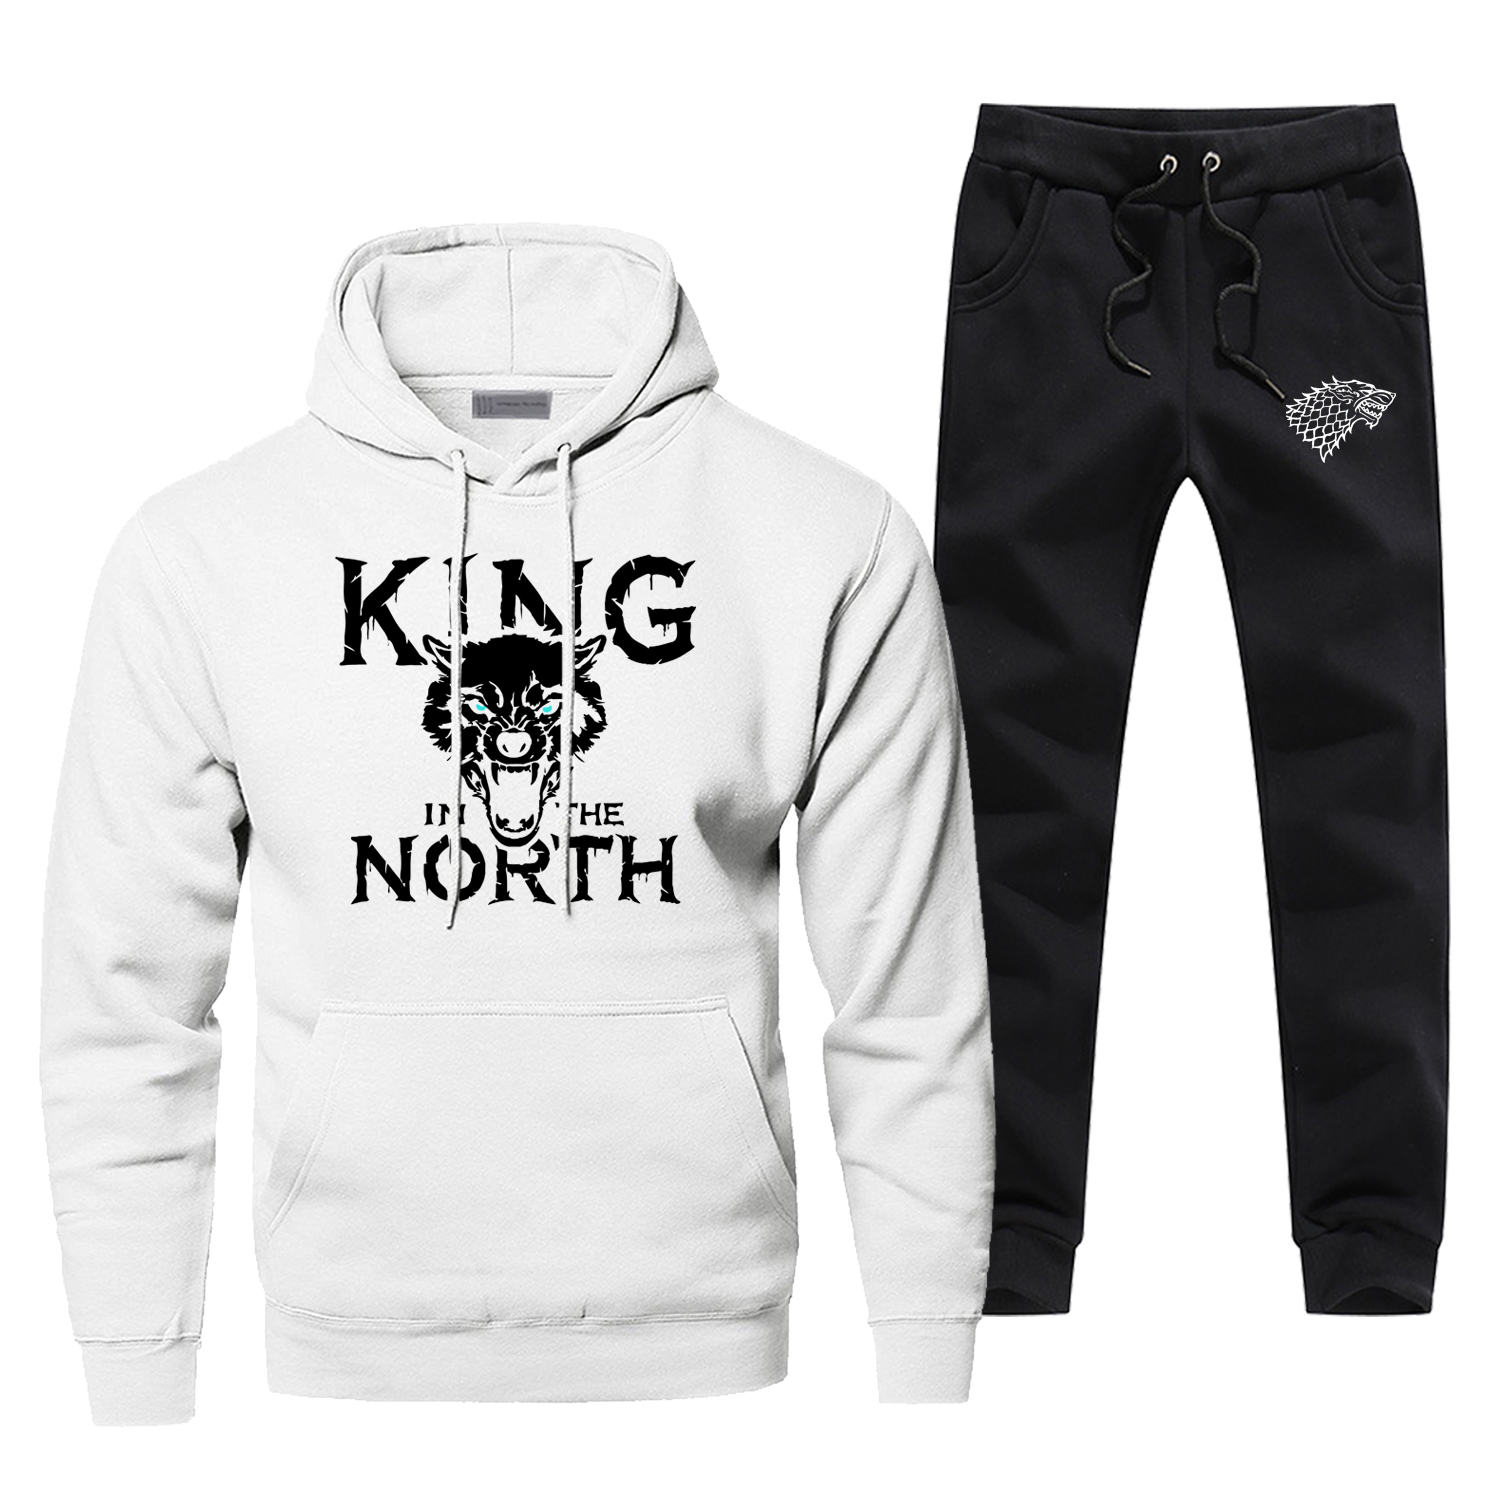 Game Of Thrones Men's Full Suit Tracksuit King In The Nroth Fashion Casual Sportsman Wear Bodywarmer House Stark Sweatpants